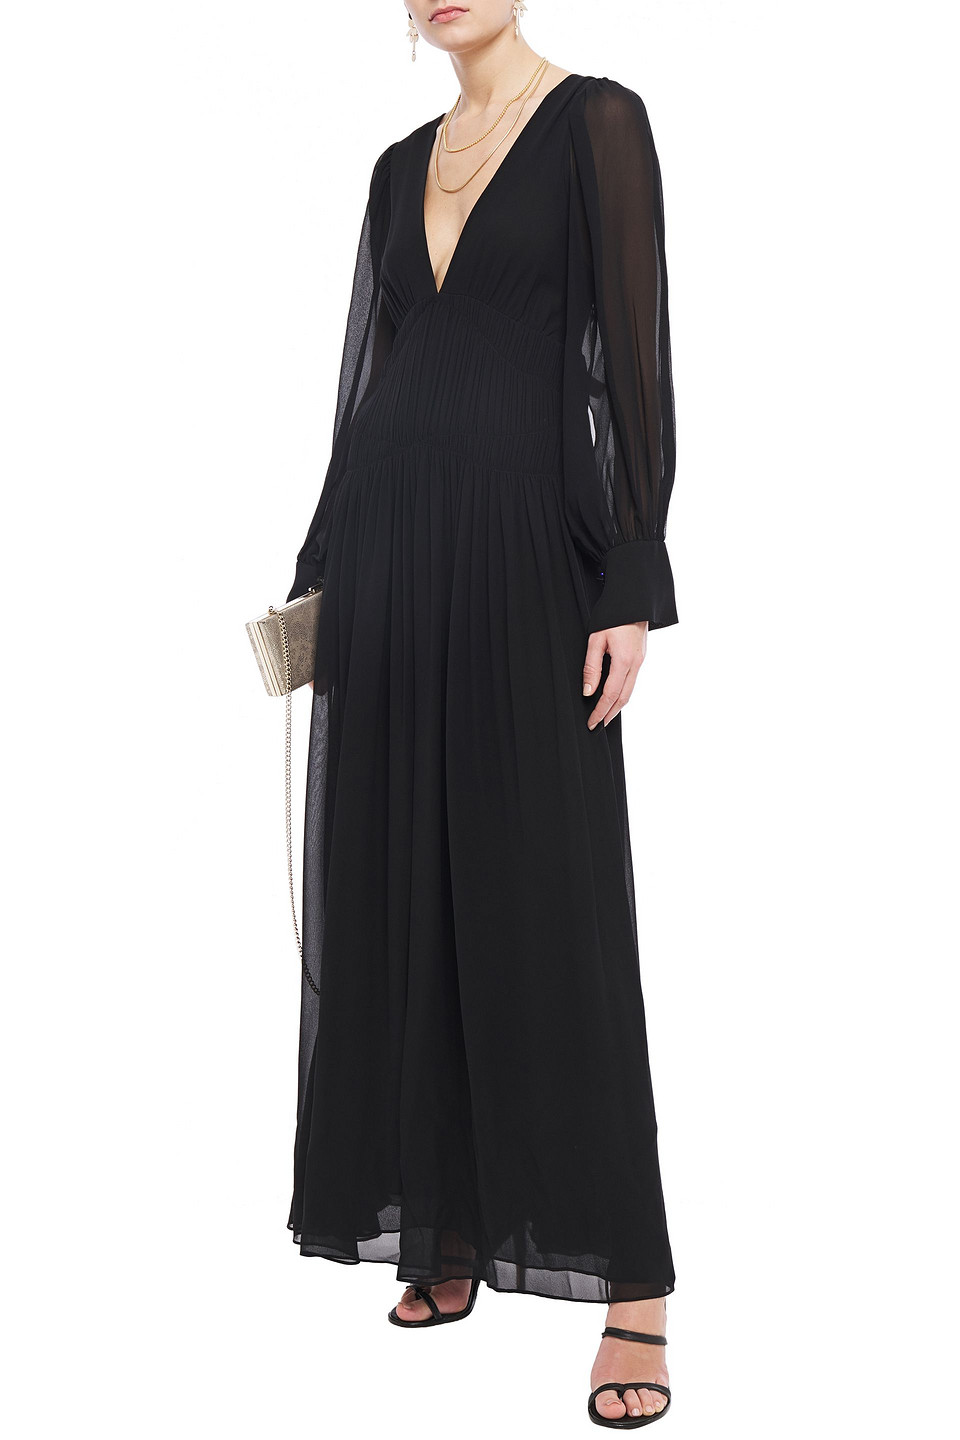 Stella McCartney | Stella Mccartney Woman Carleigh Shirred Silk-georgette Maxi Dress Black | Clouty